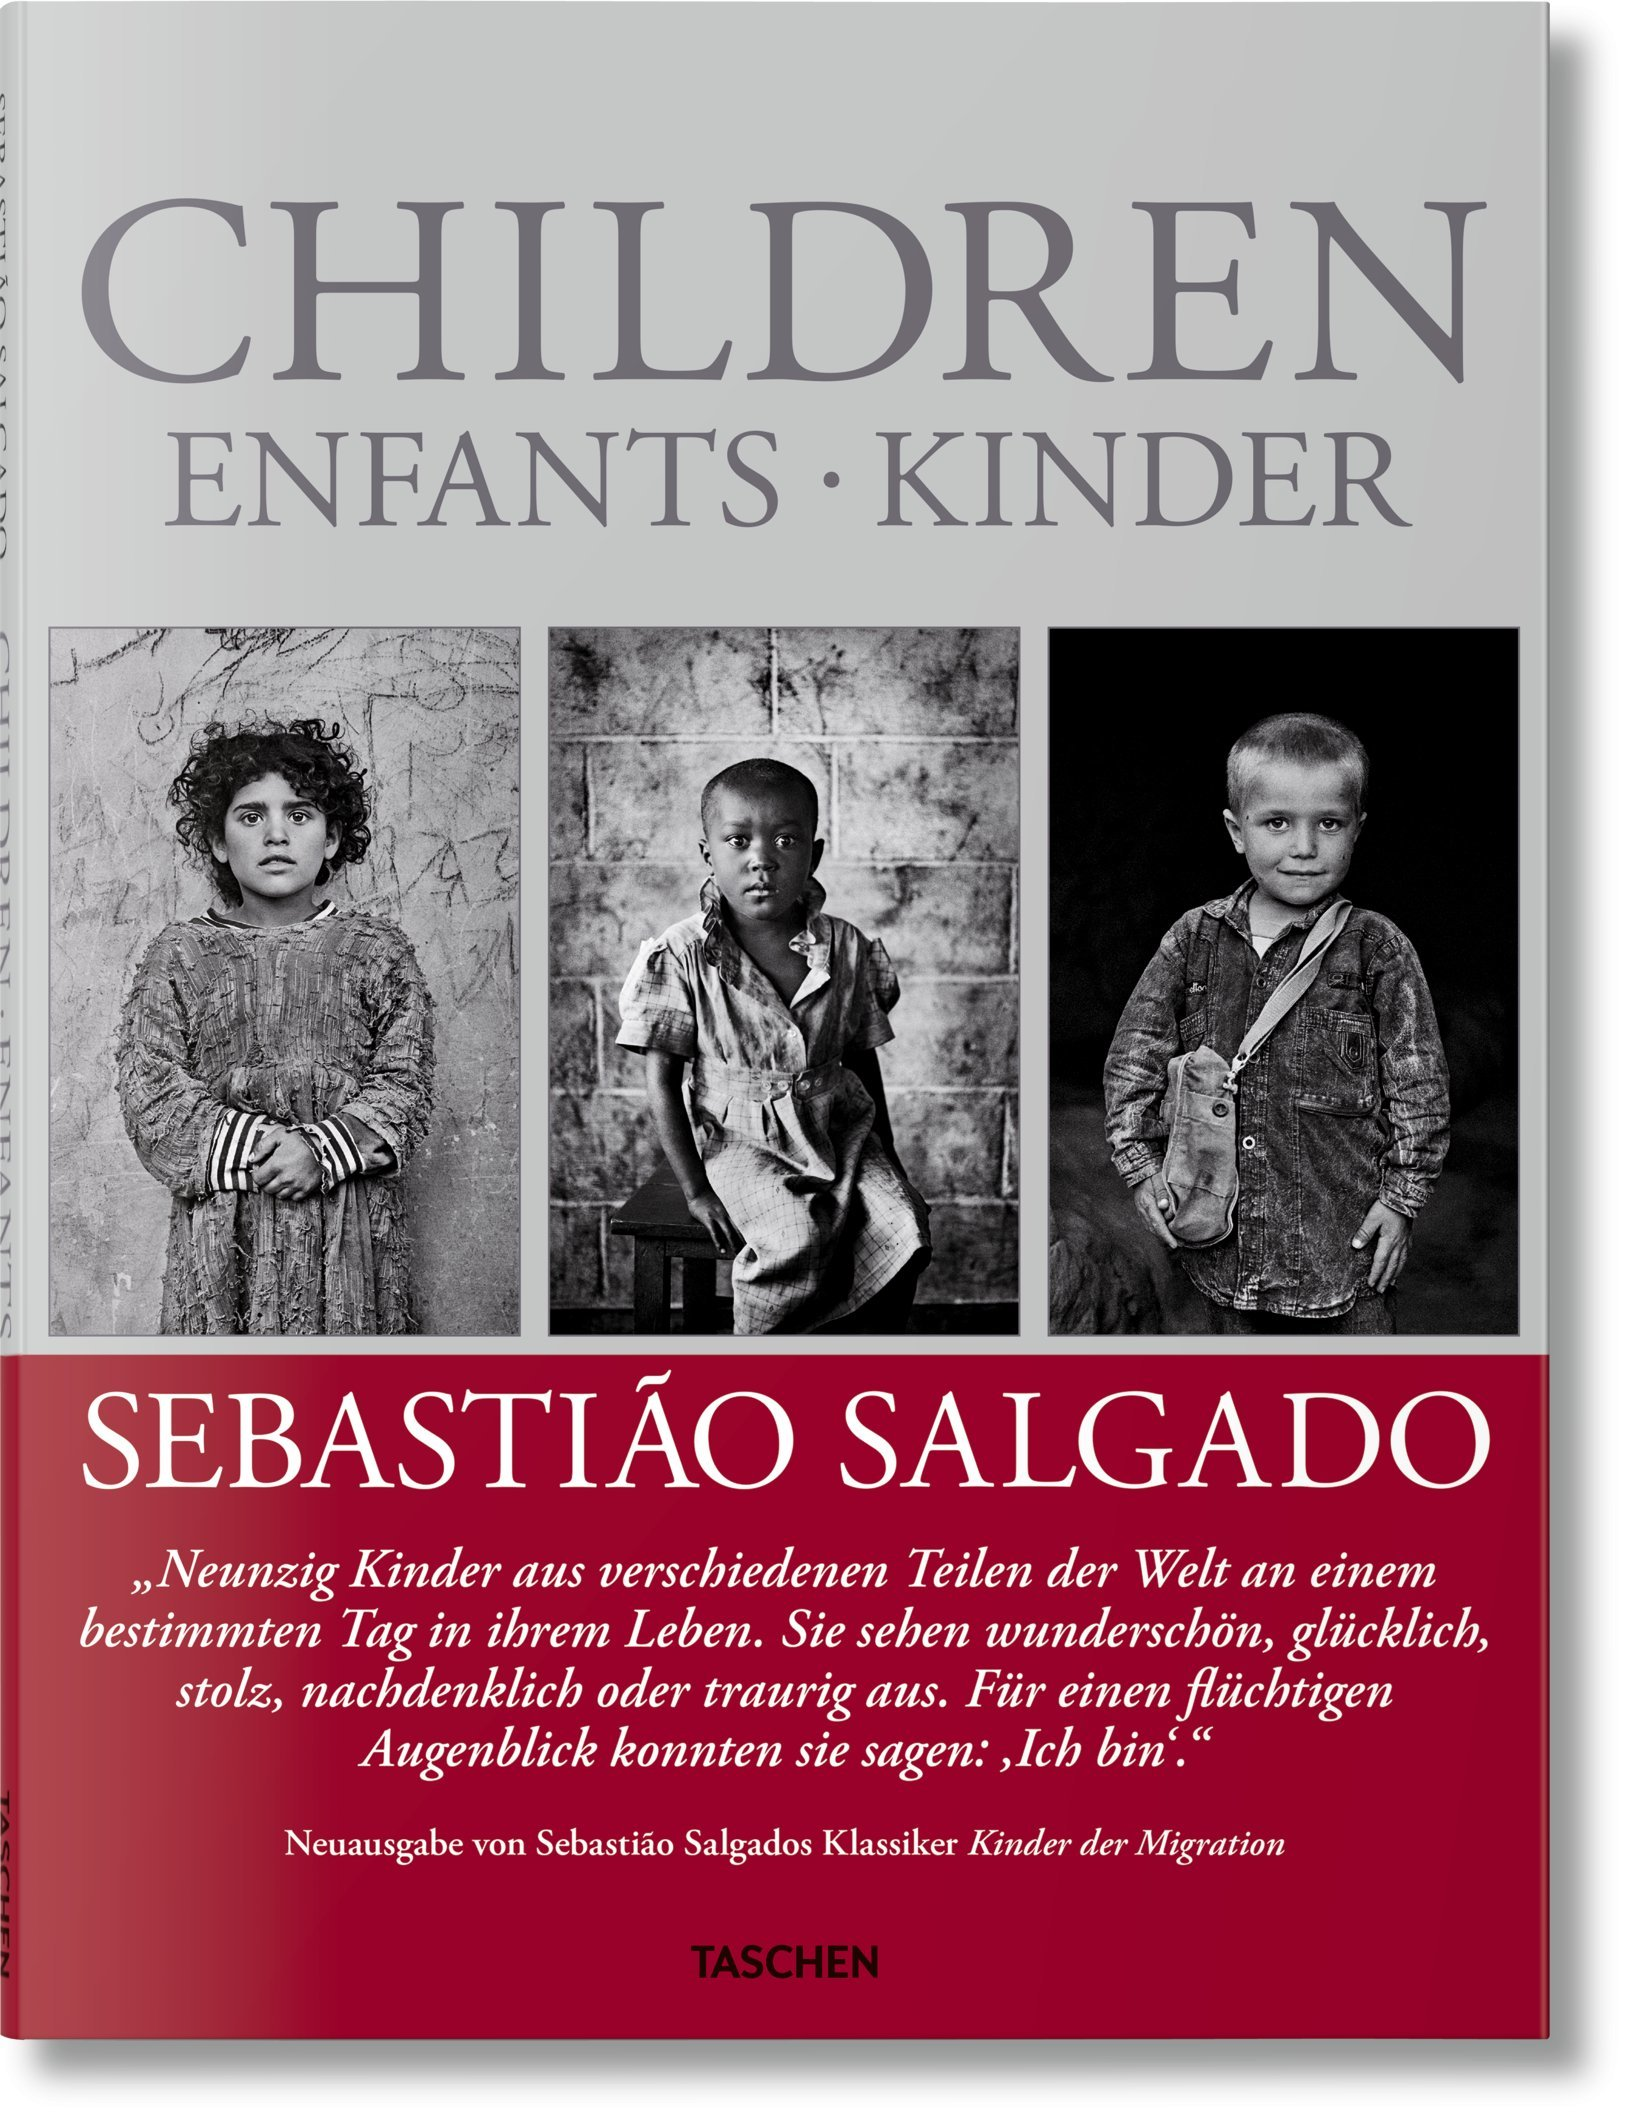 fo-salgado_children-cover_05317